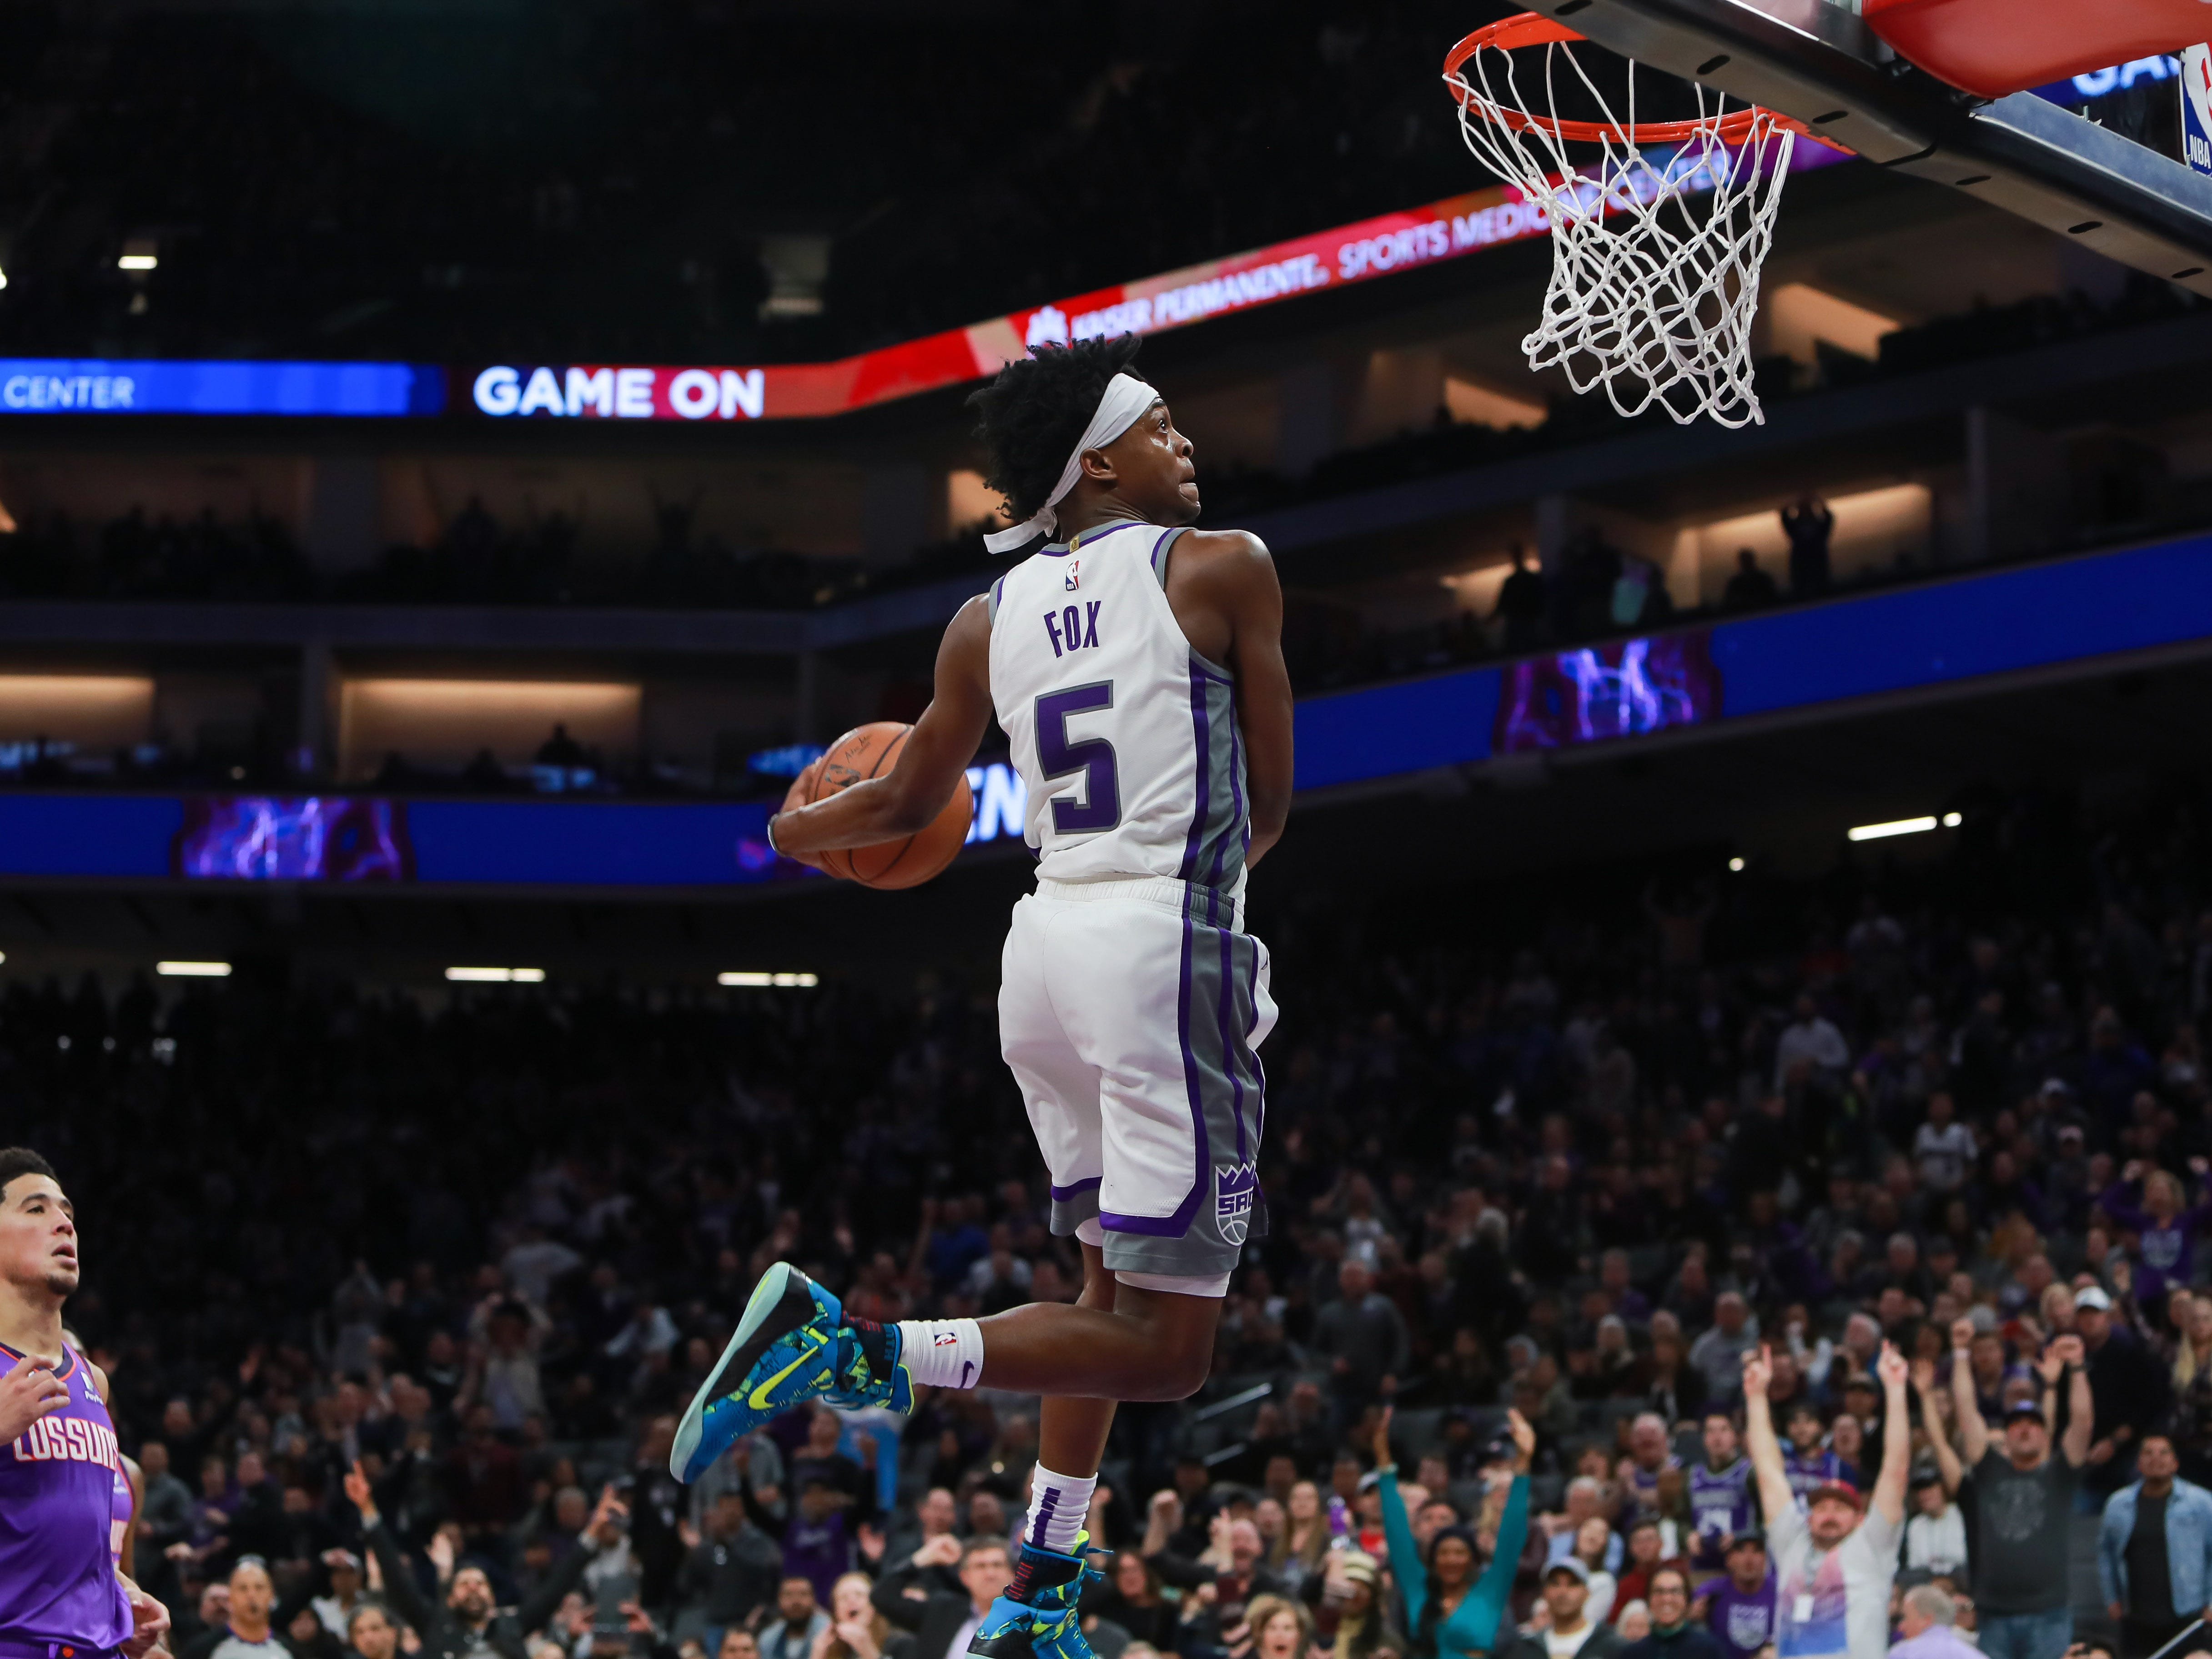 Mar 23, 2019; Sacramento, CA, USA; Sacramento Kings guard De'Aaron Fox (5) dunks the ball against the Phoenix Suns during the fourth quarter at Golden 1 Center.